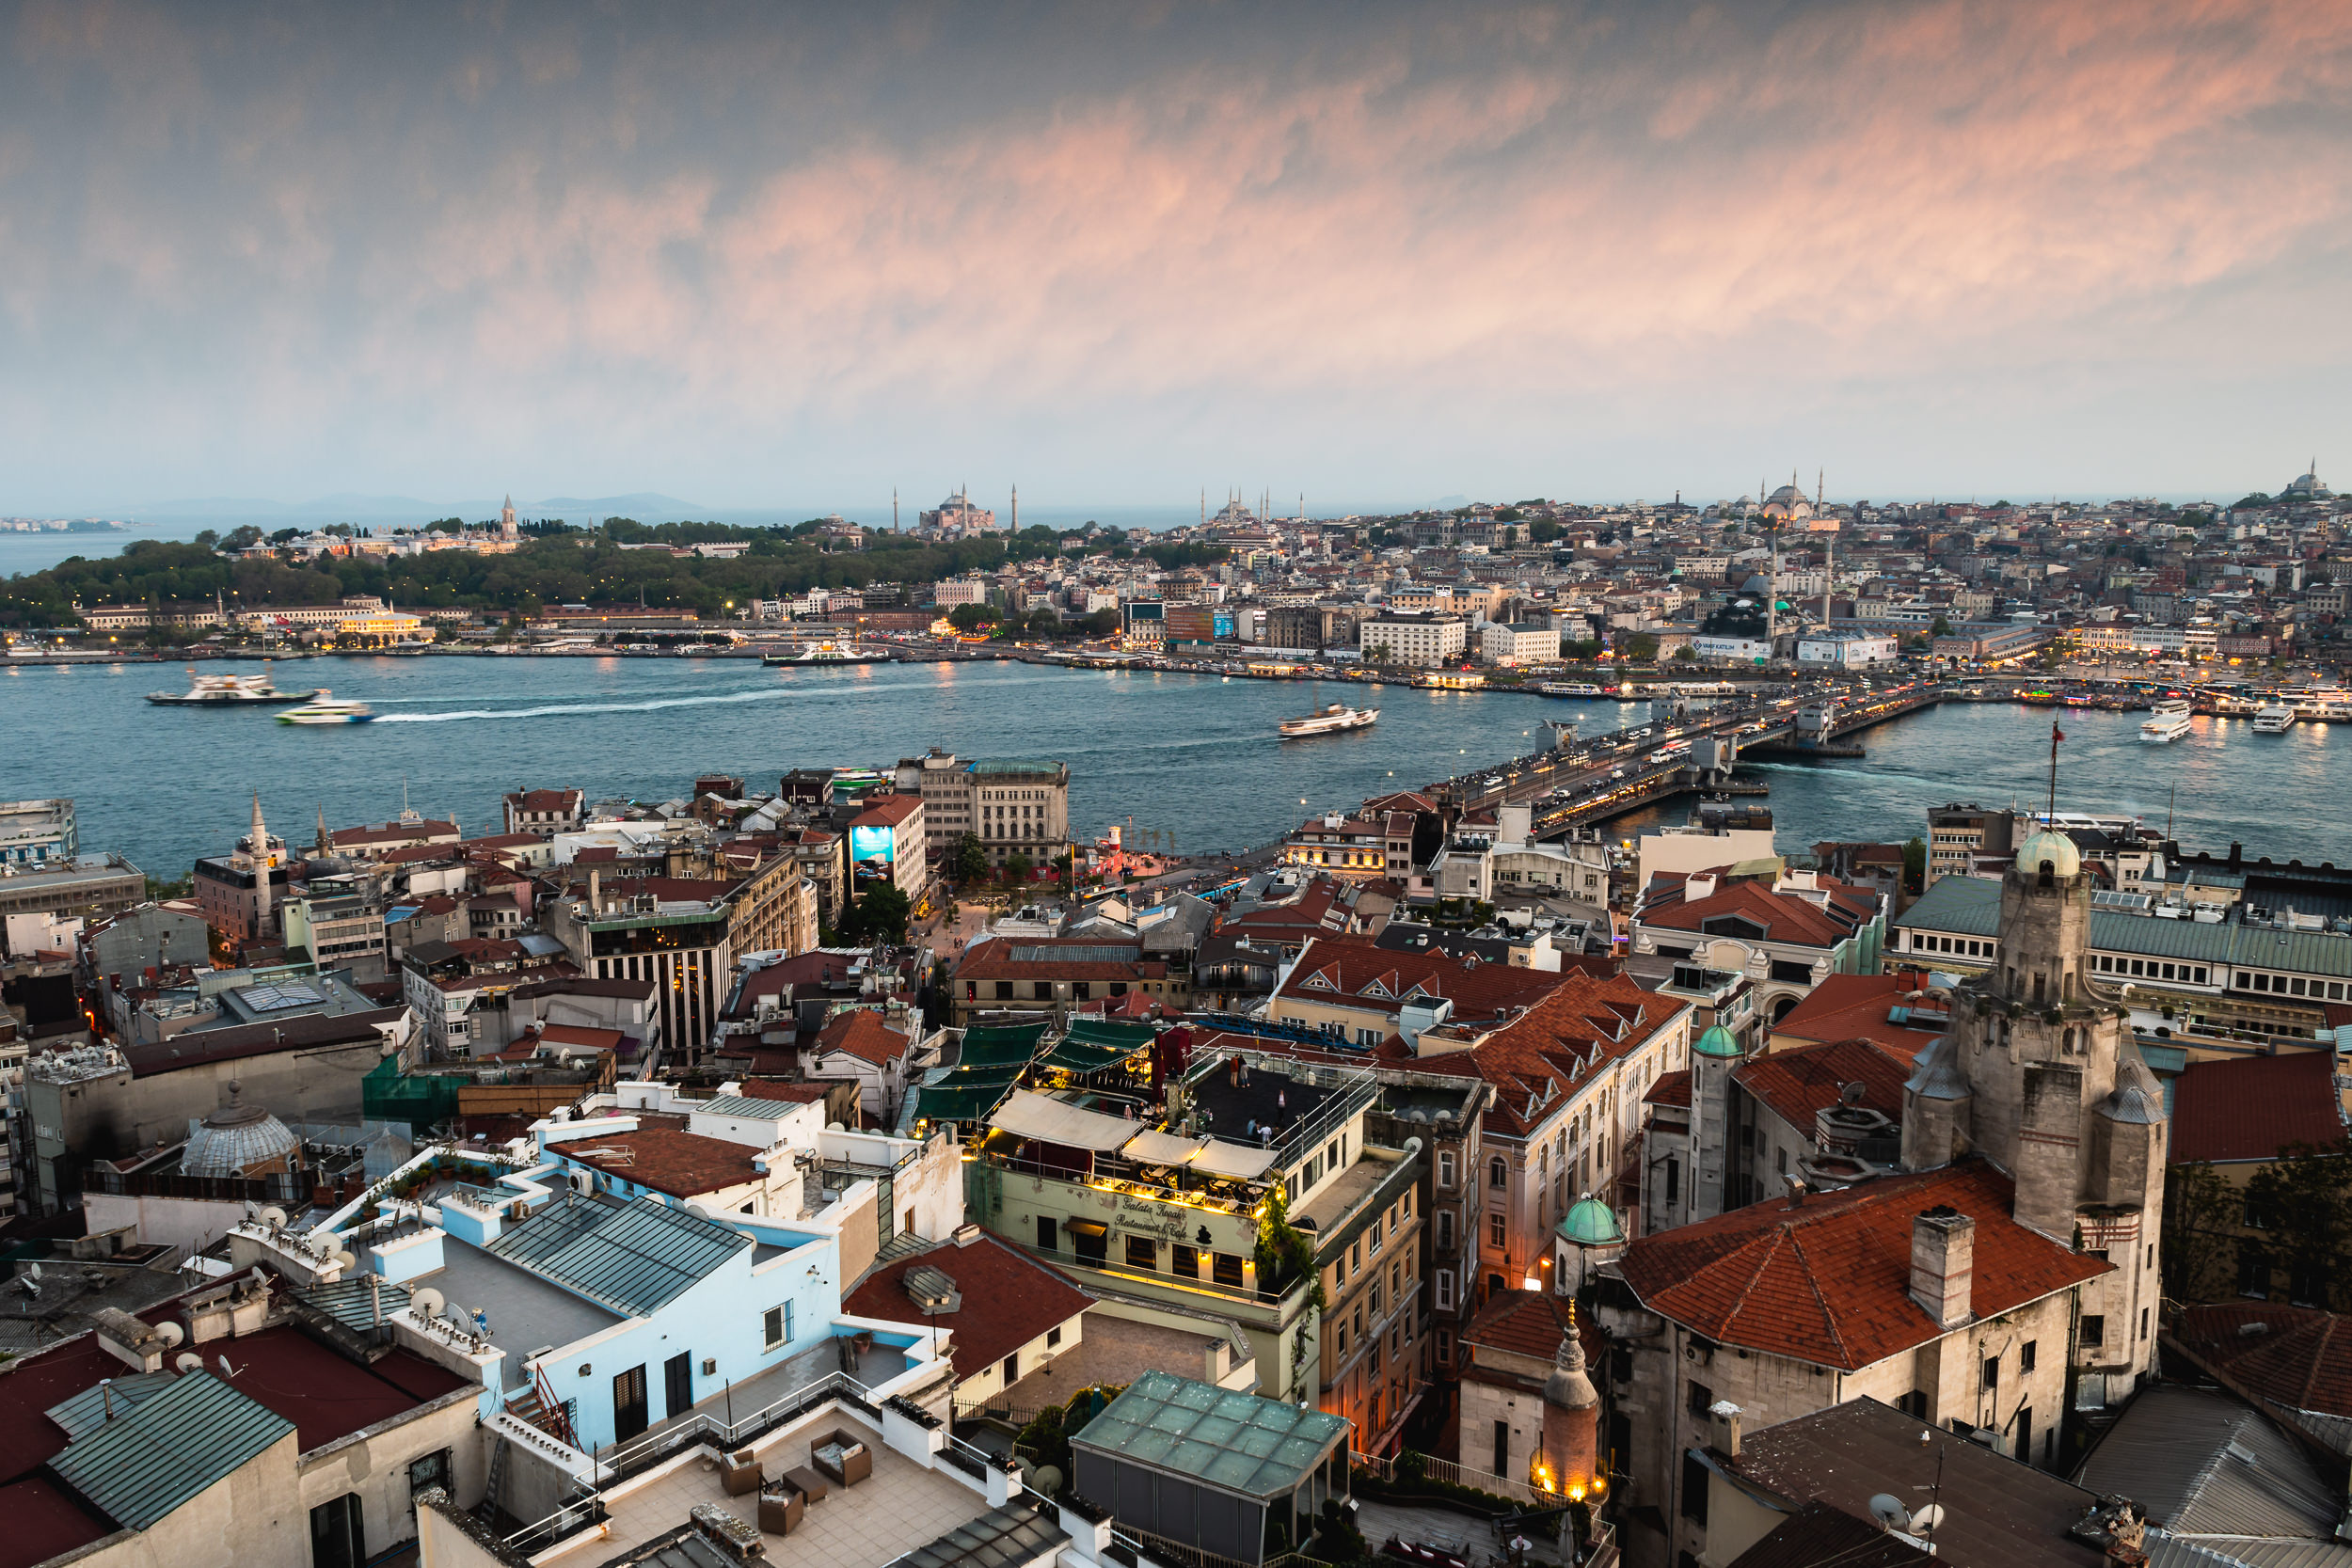 View of Istanbul from the top of the Galata Tower. Hagia Sophia and Blue Mosque can be seen in the background. The Galata Bridge connects the new and old parts of the city.